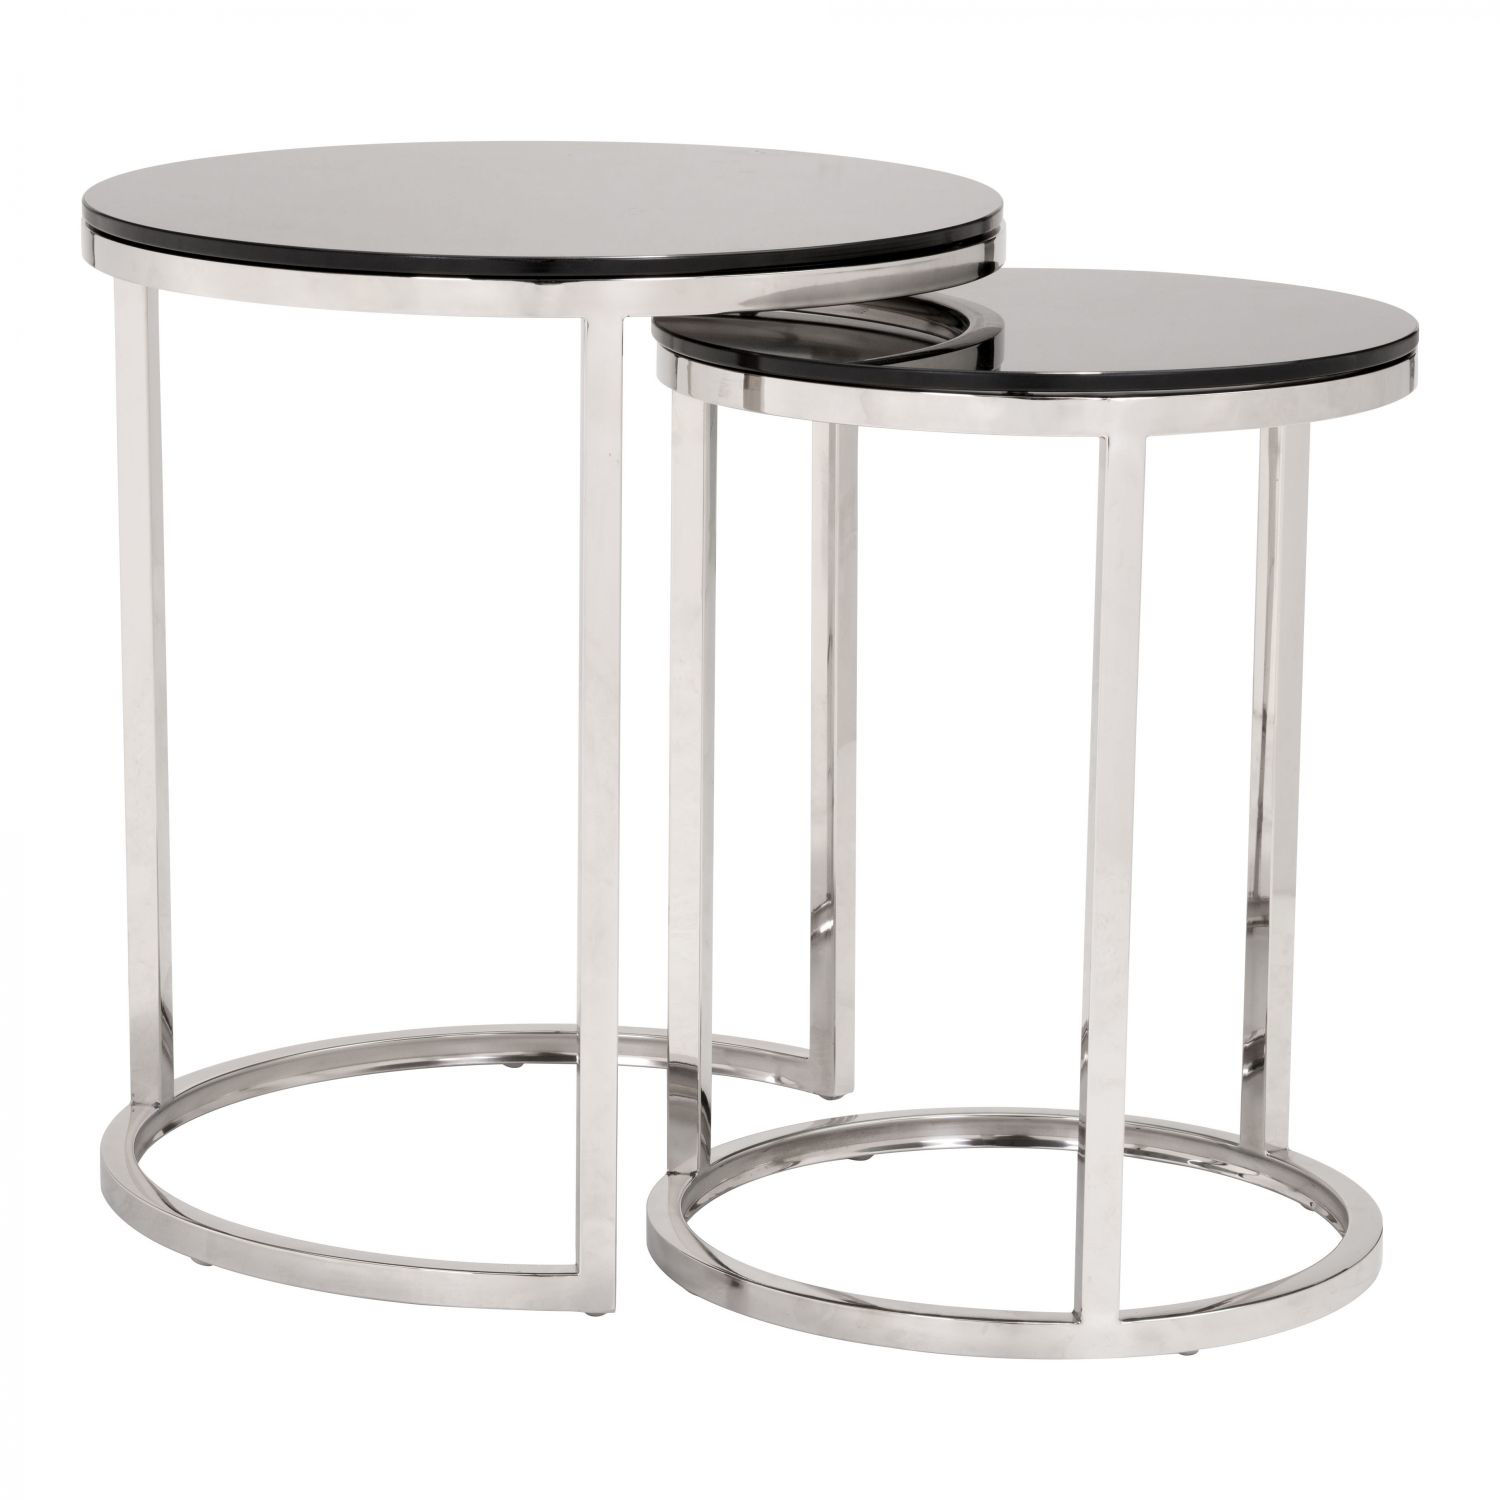 Picture of Rem Coffee Table Sets Black & Stainless *D